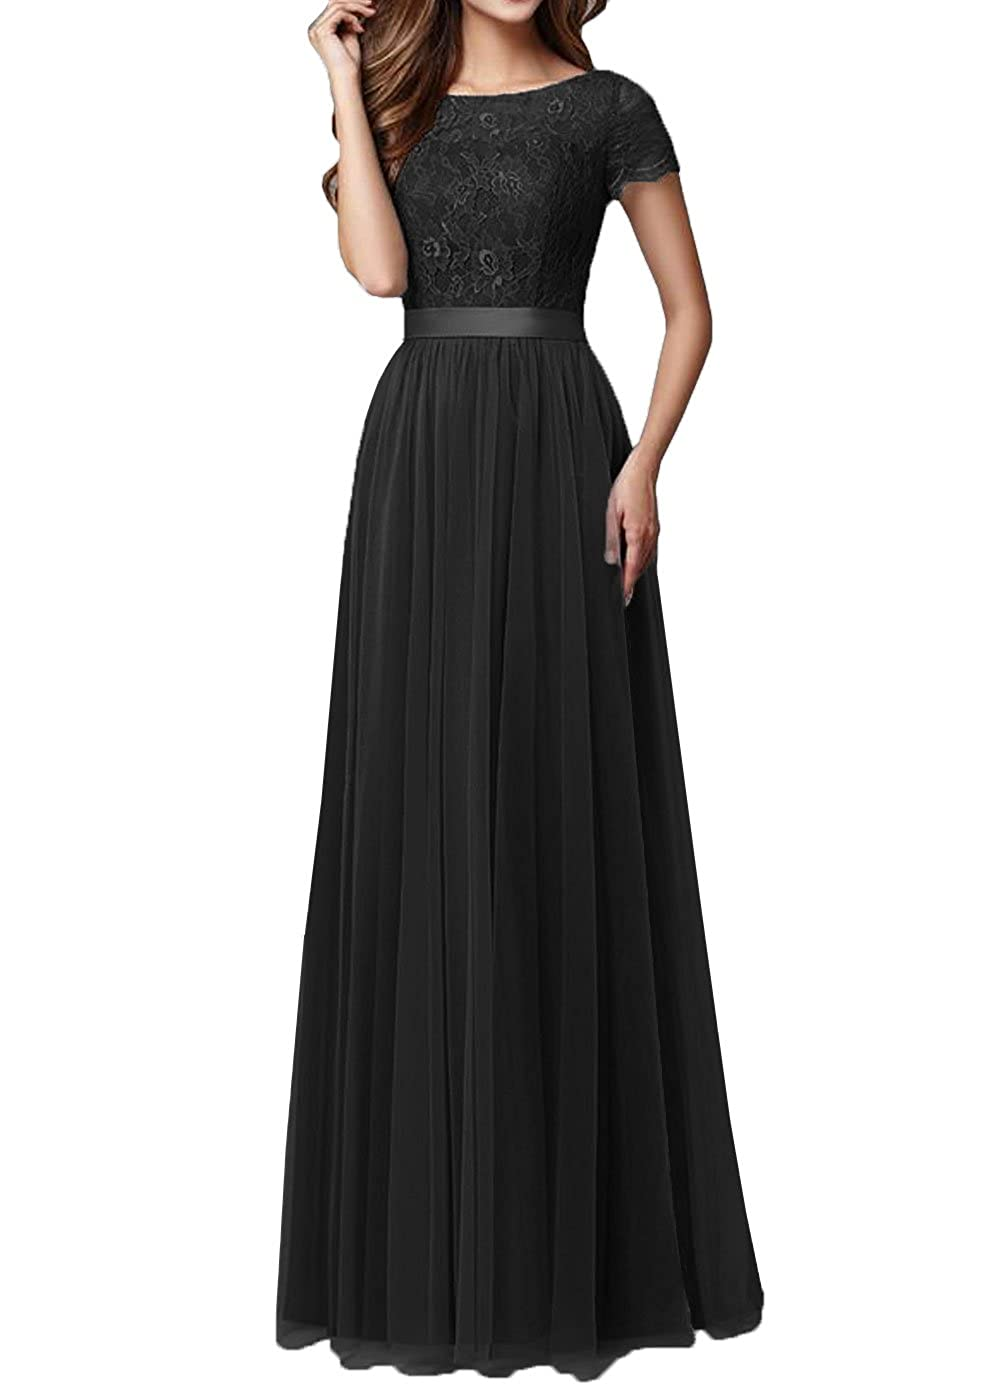 9fba8310da2 Amazon.com  DYS Women s Lace Bridesmaid Dress Sleeves Tulle Prom Evening  Dresses Long  Clothing